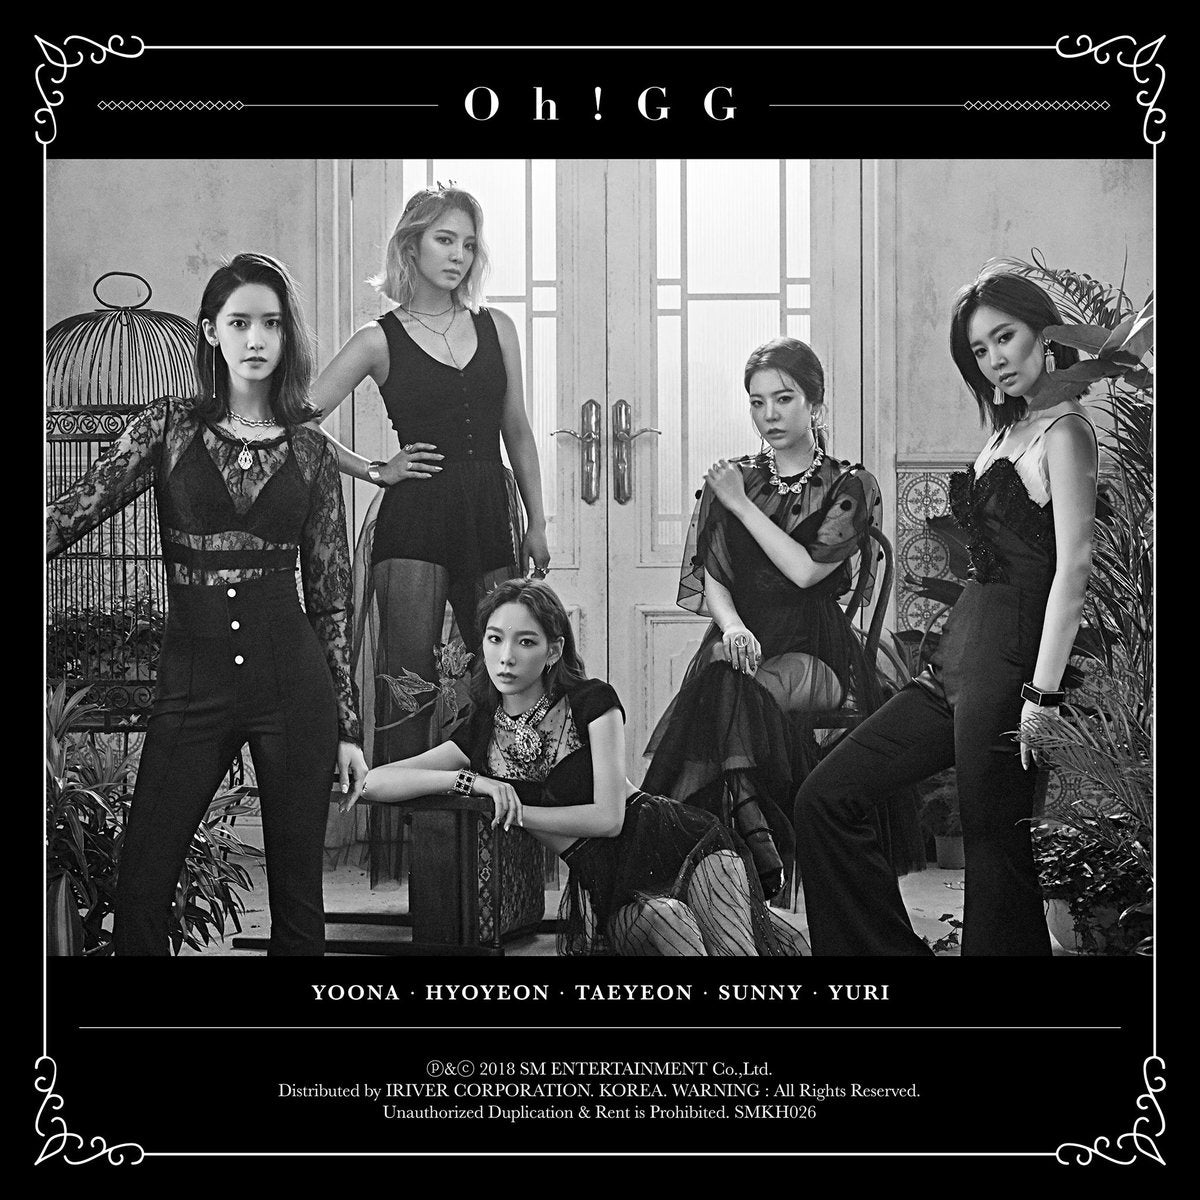 GIRL'S GENERATION Oh!GG SINGLE KIHNO ALBUM 'LIL' TOUCH'